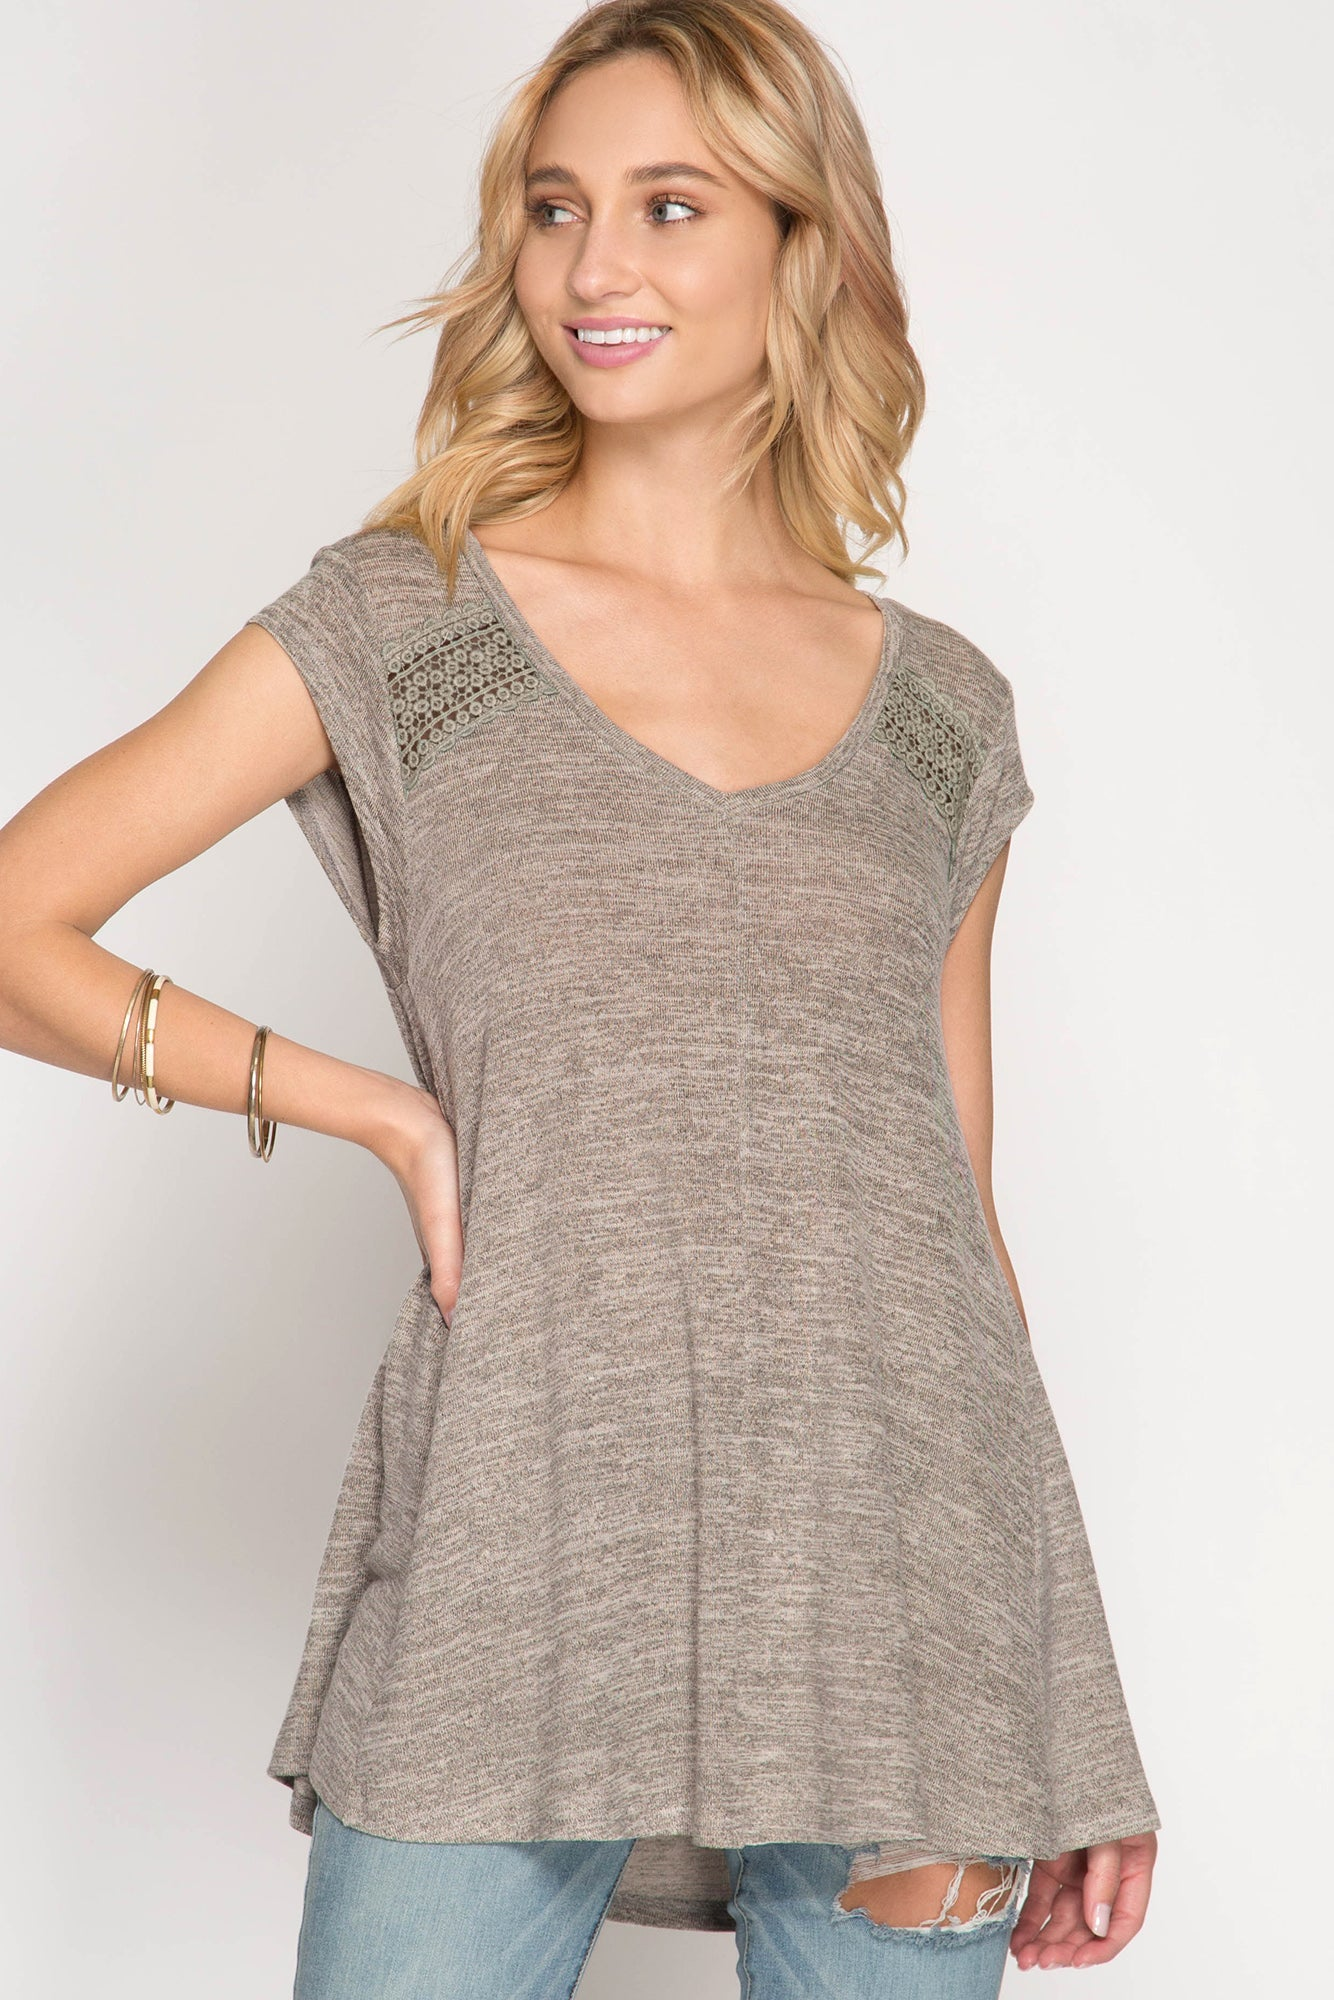 Oatmeal A-Line Top with Qute Inset